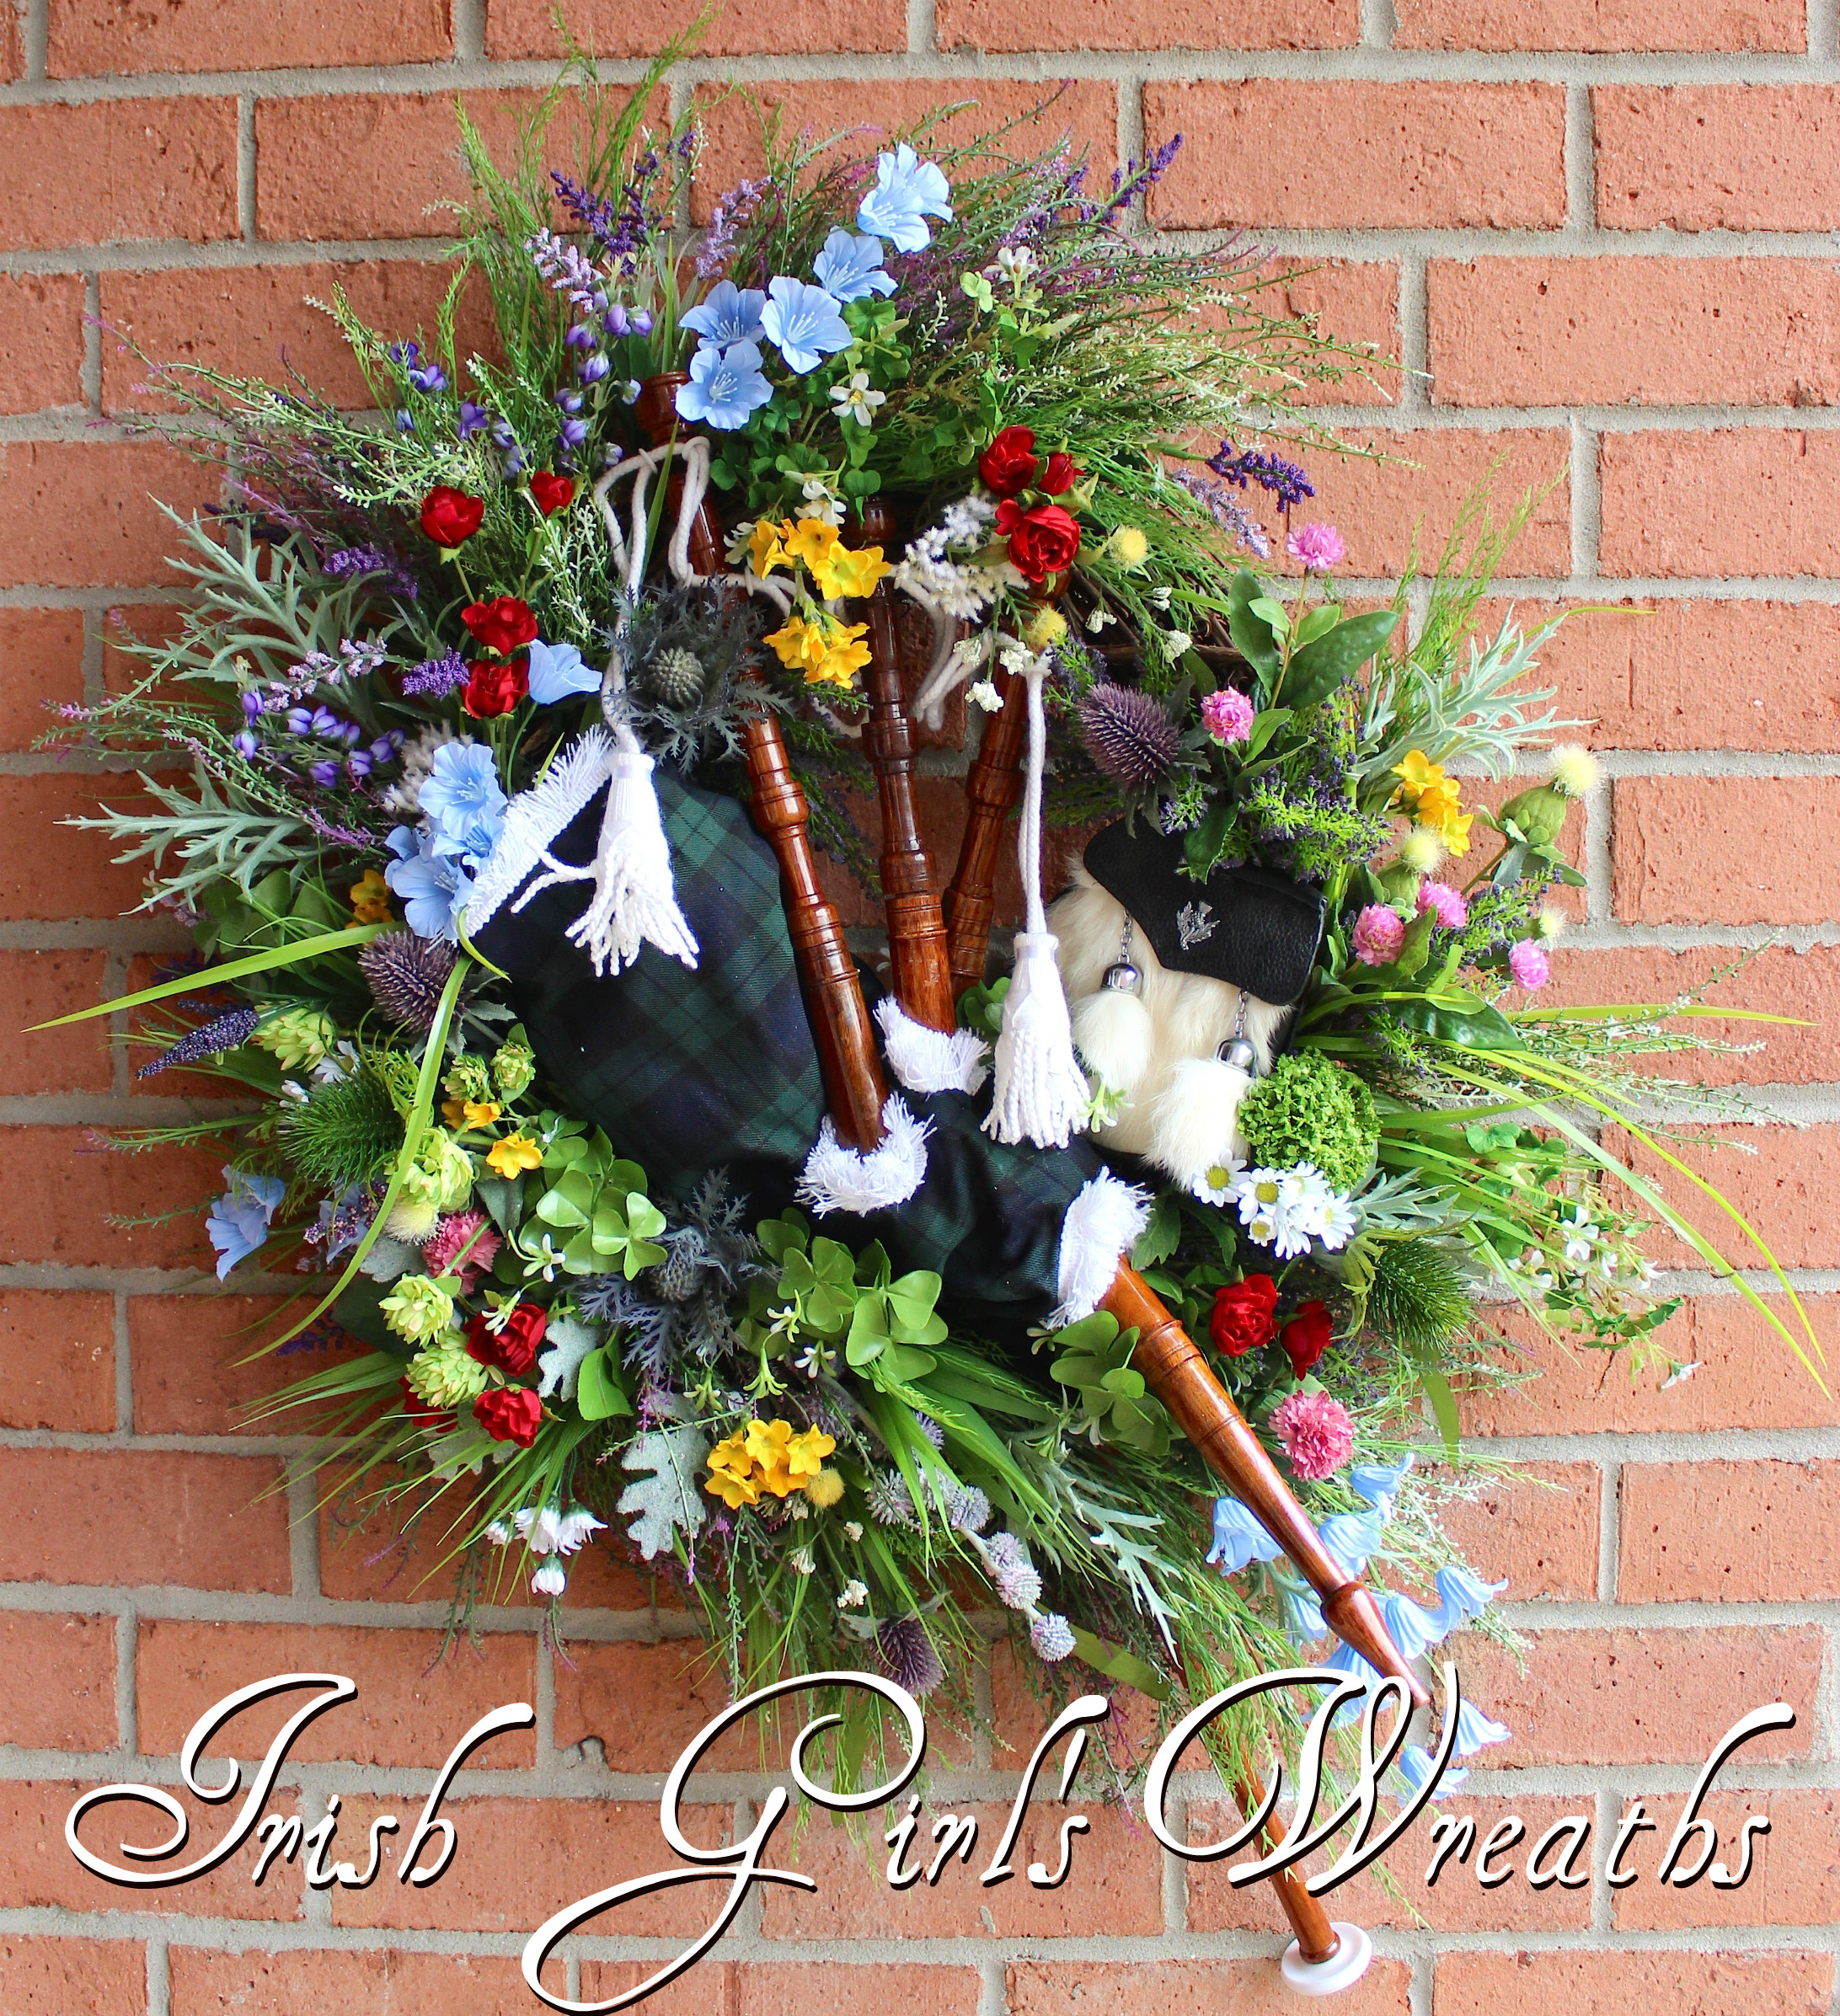 Irish Wildflower Bagpipes and Sporran Wreath, Custom Order